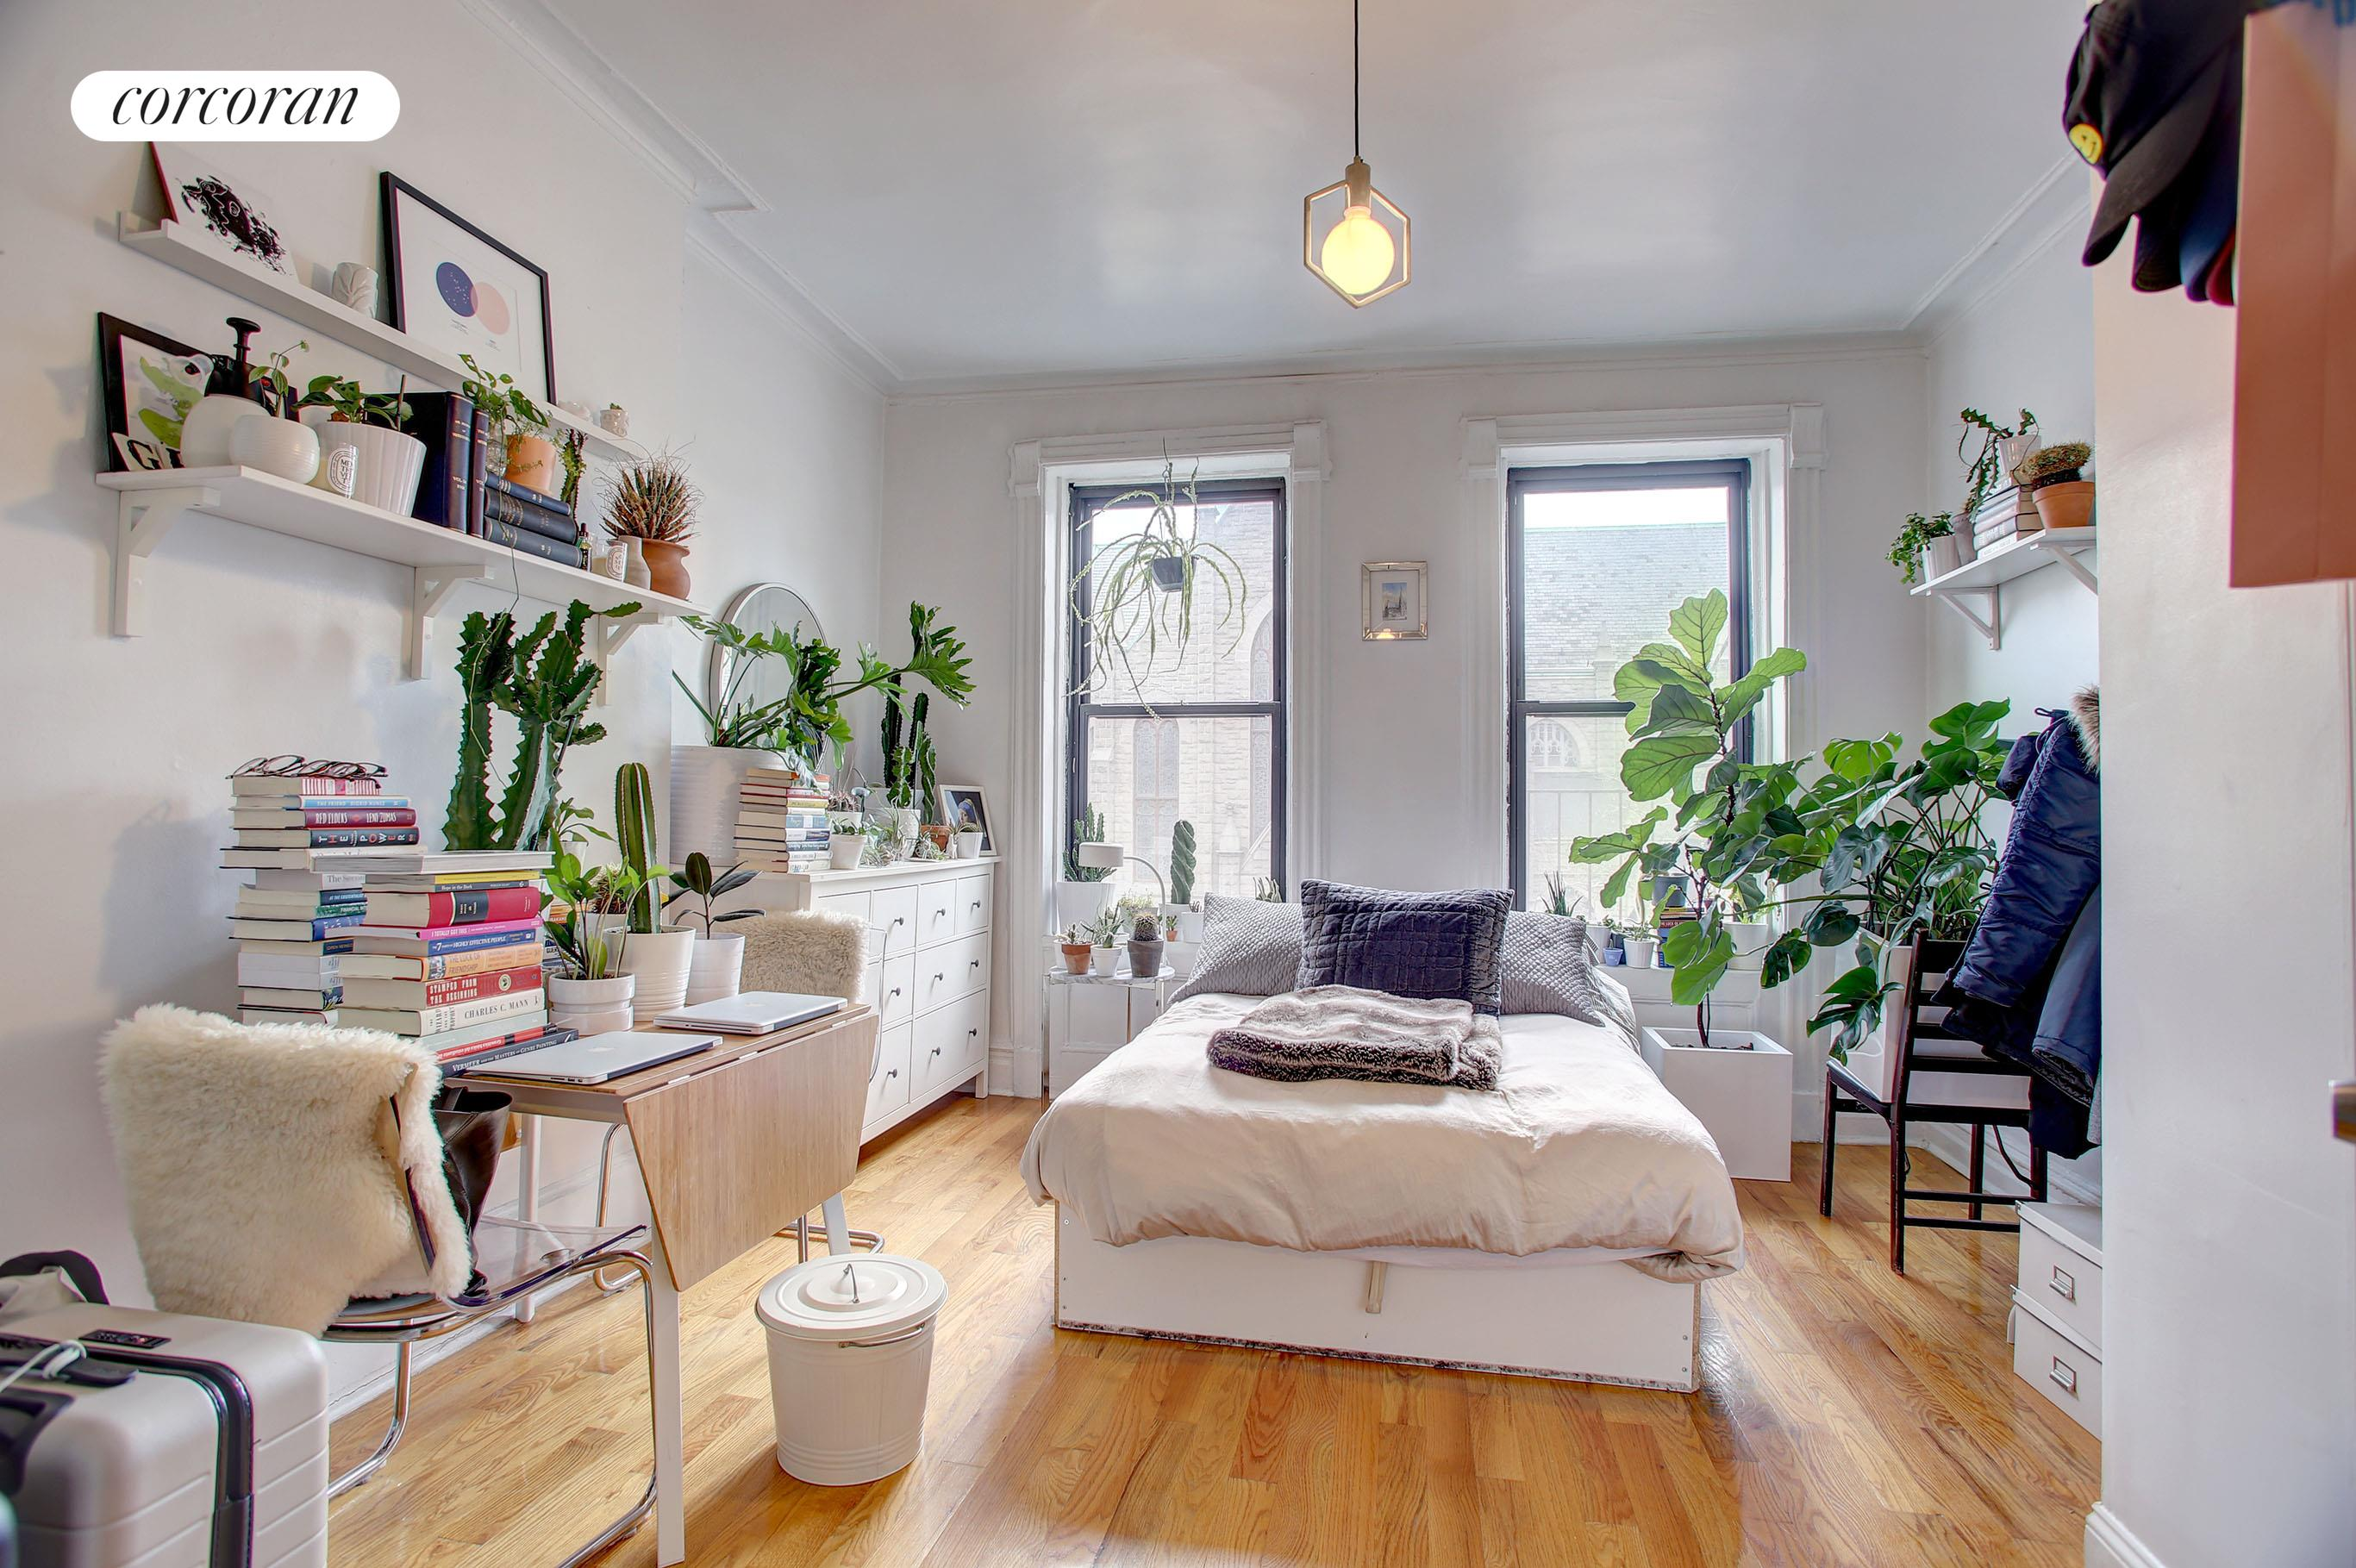 202 West 96th Street Upper West Side New York NY 10025